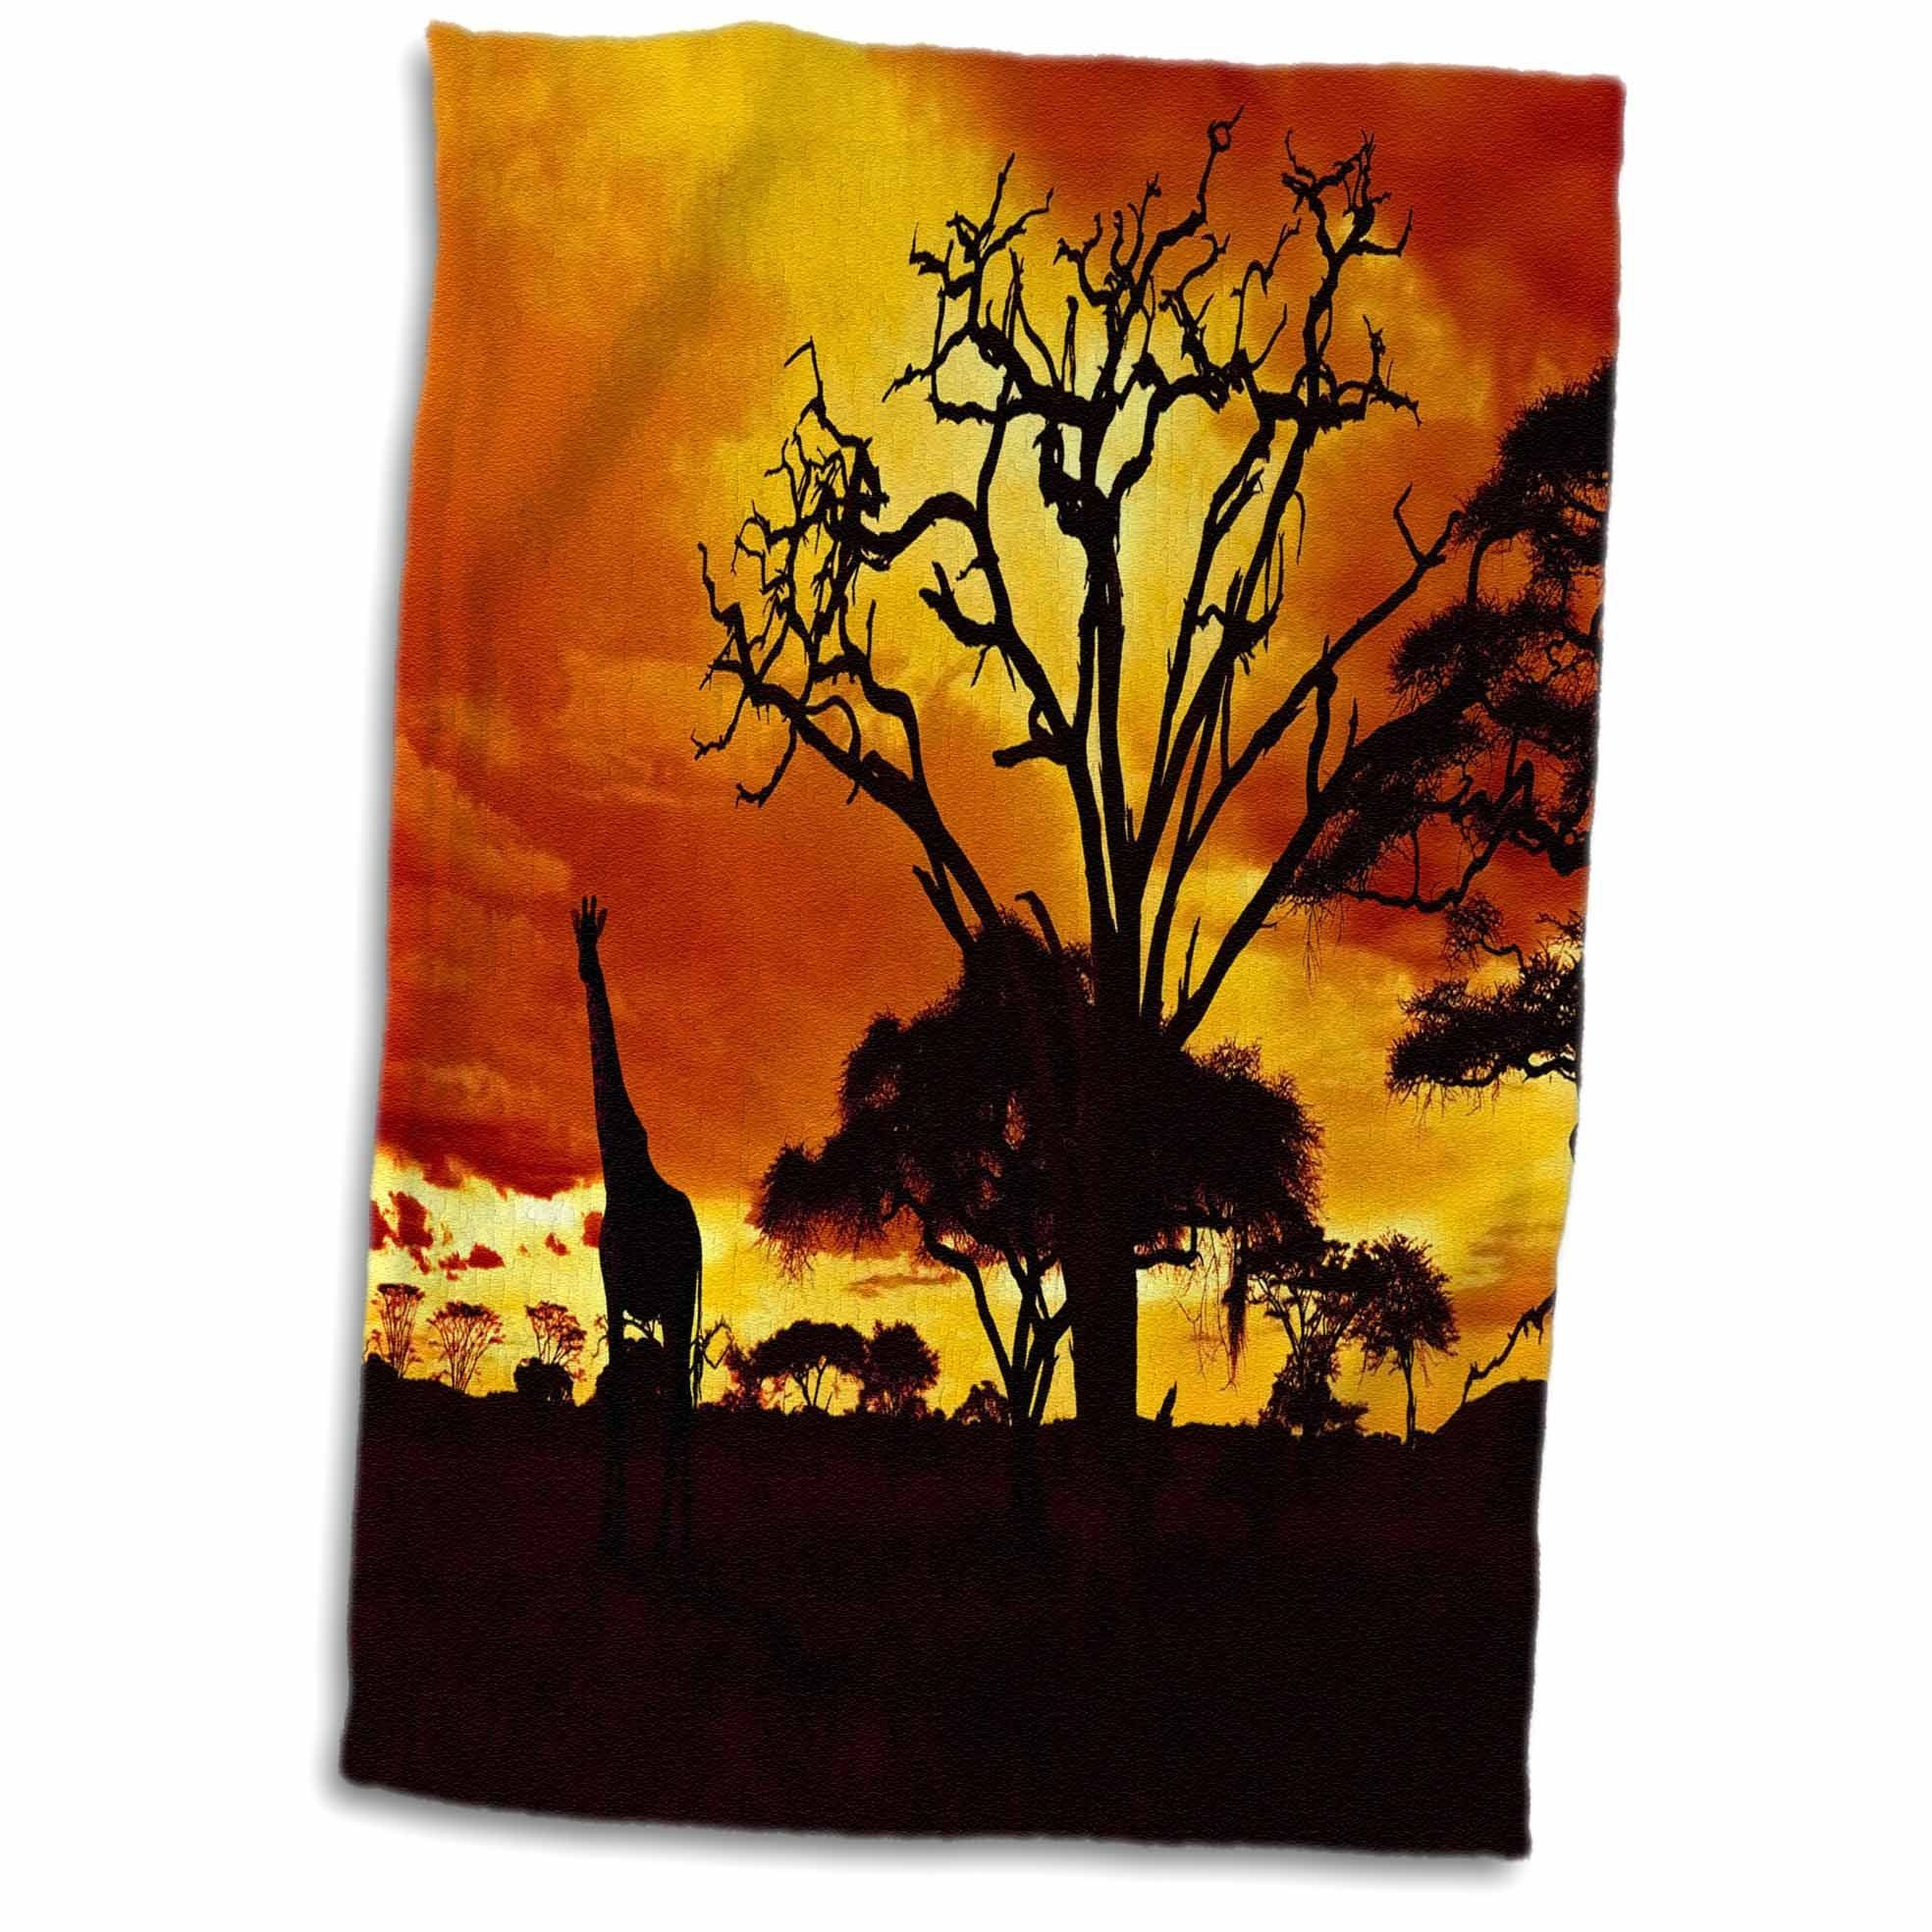 3D Rose Giraffe on African Plains at Sunset Animal Safari Africa TWL_173293_1 Towel, 15'' x 22''